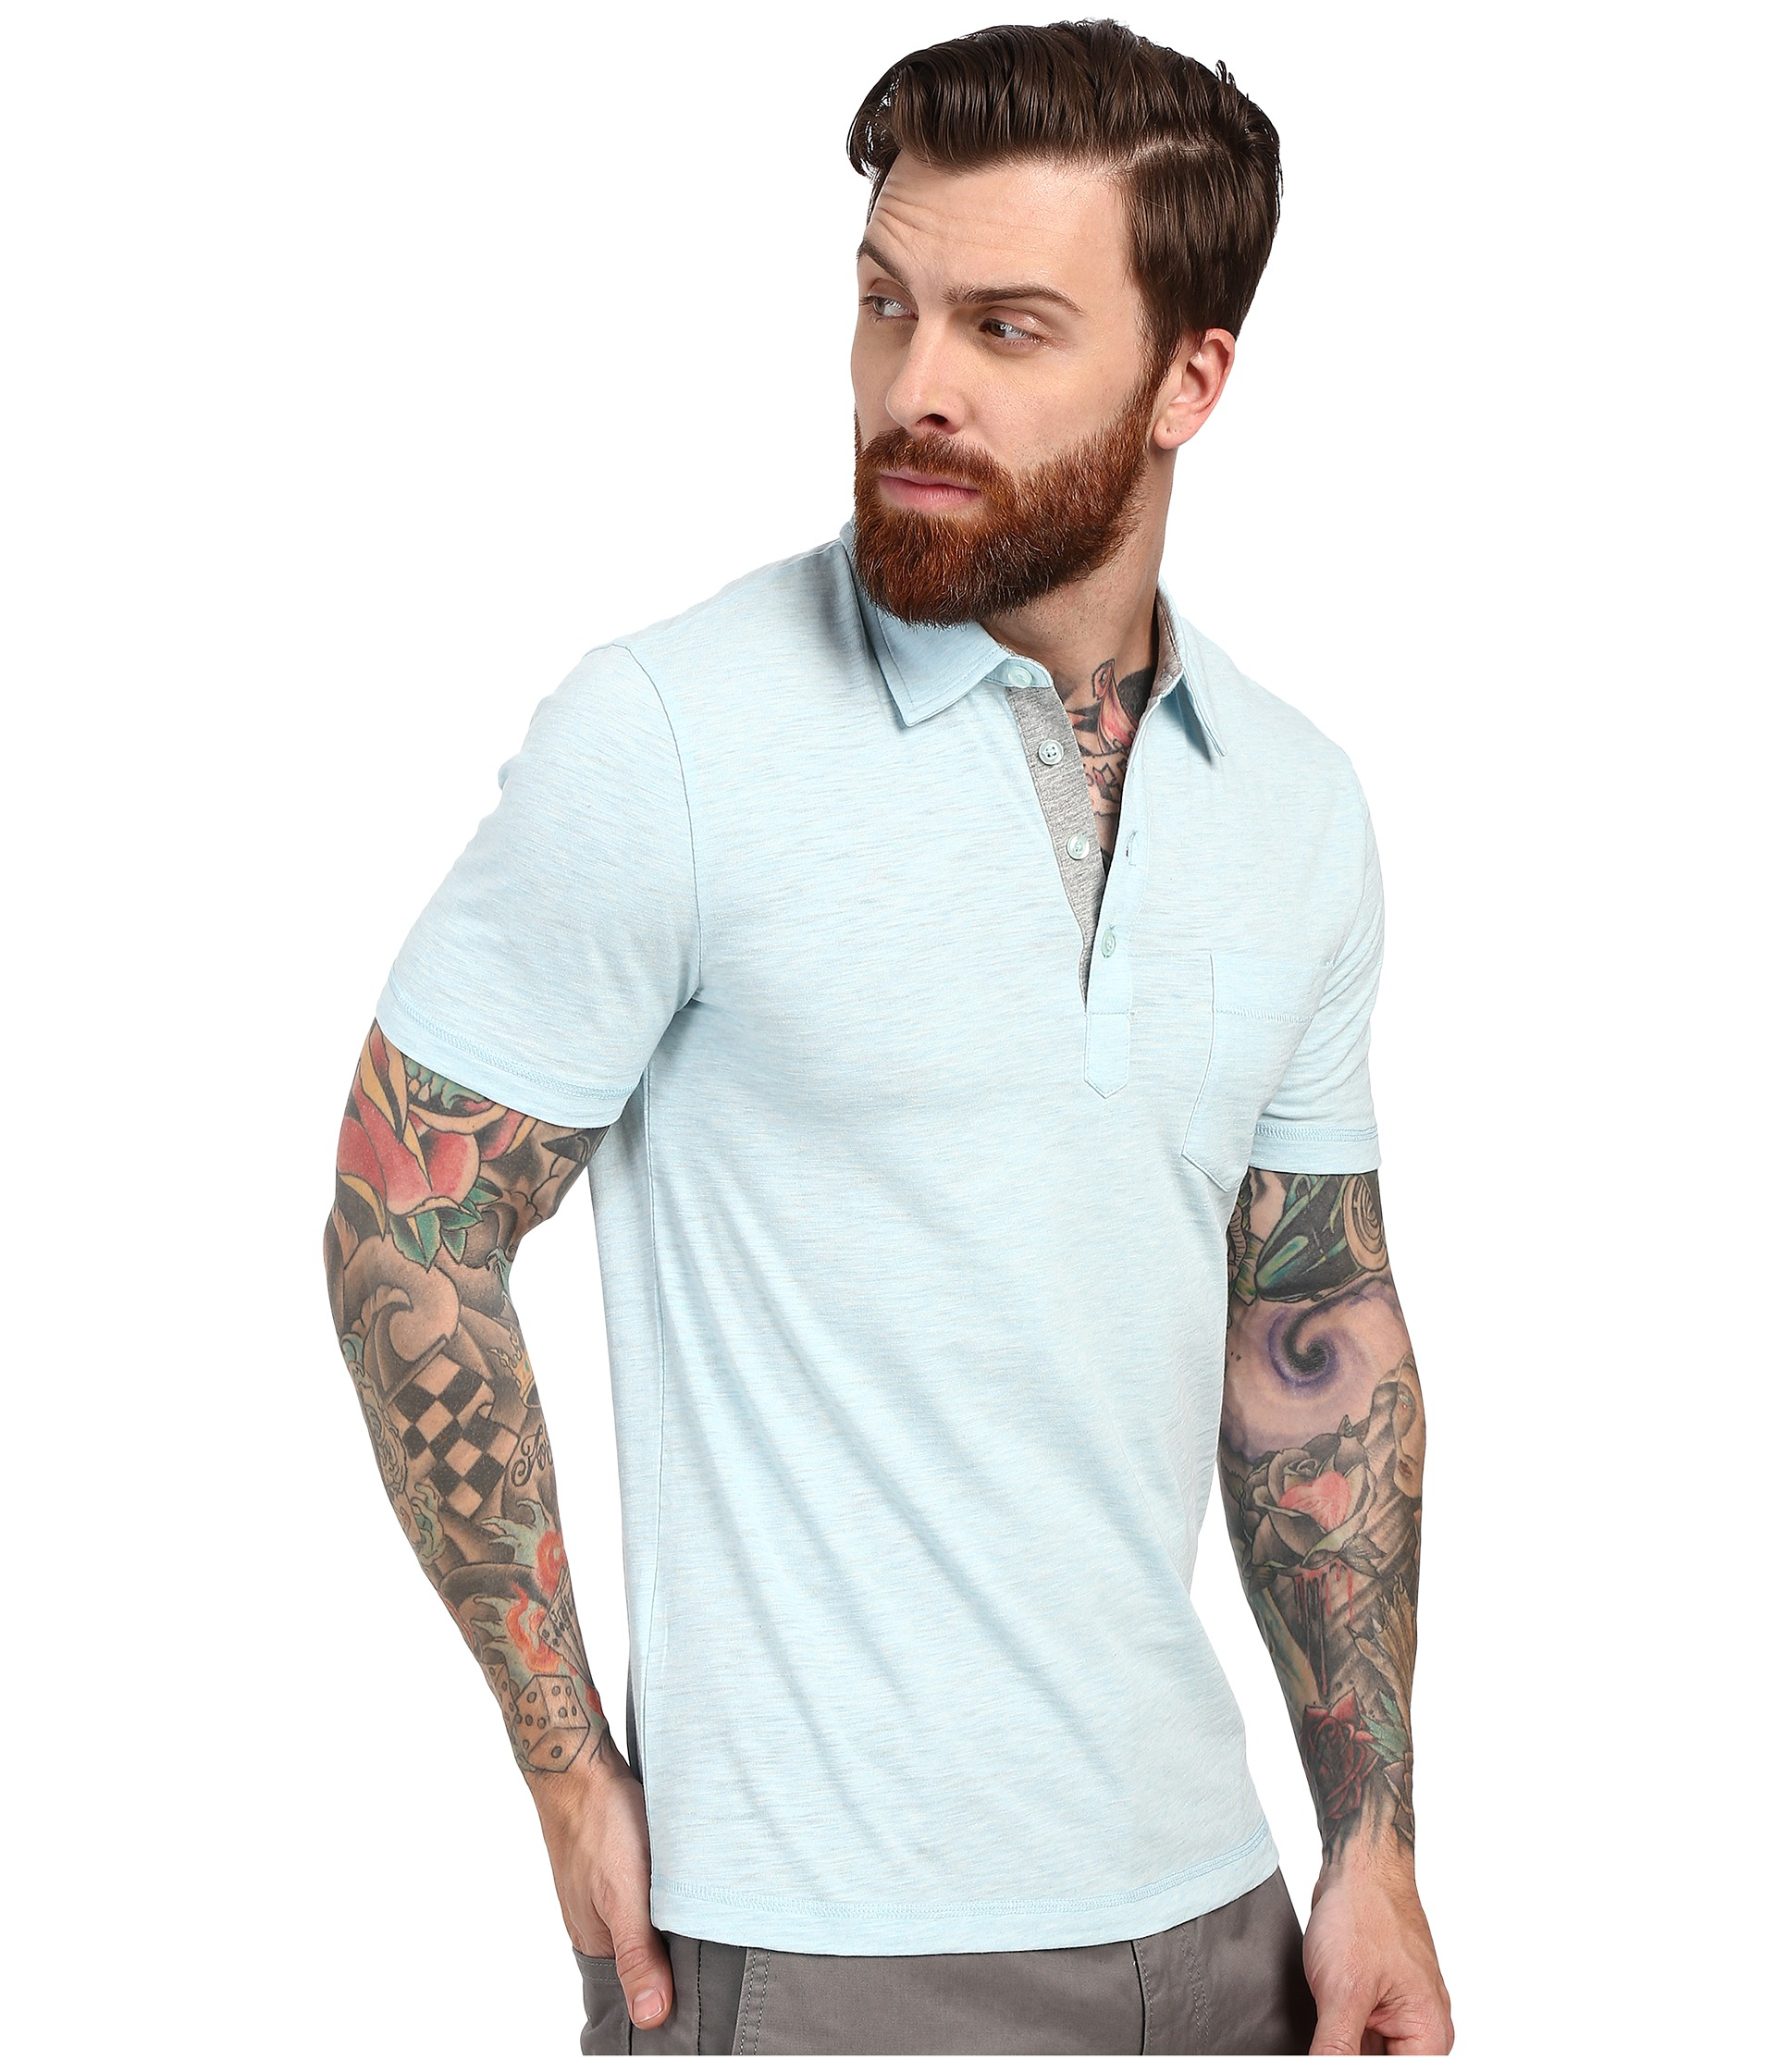 Mens Bing Shirt Polo Original Penguin Cheap Sale Pay With Visa Classic Sale Online Discount Low Shipping Online XAdehwKcrn